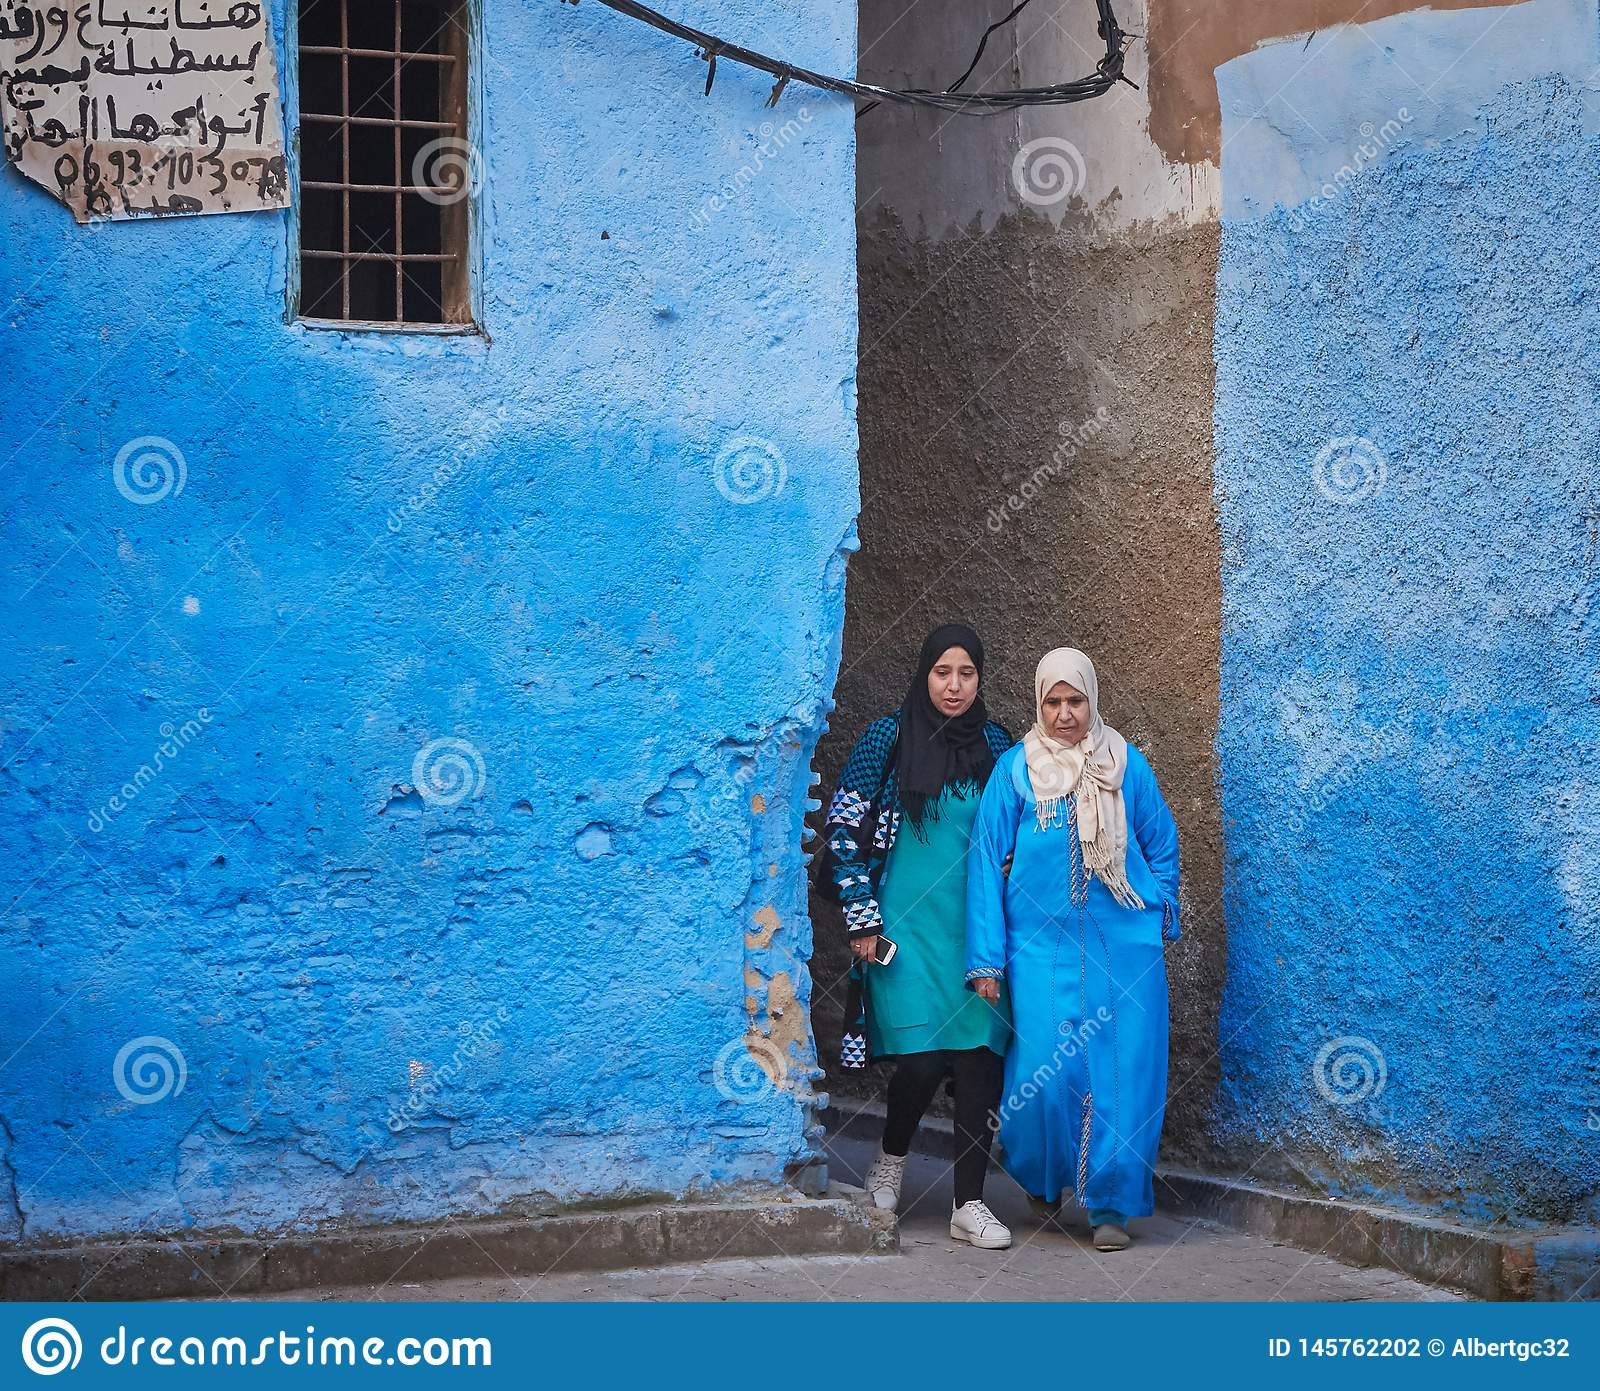 Fez, Morocco - December 07, 2018: couple of Moroccan women leaving a blue alley in the medina of fez